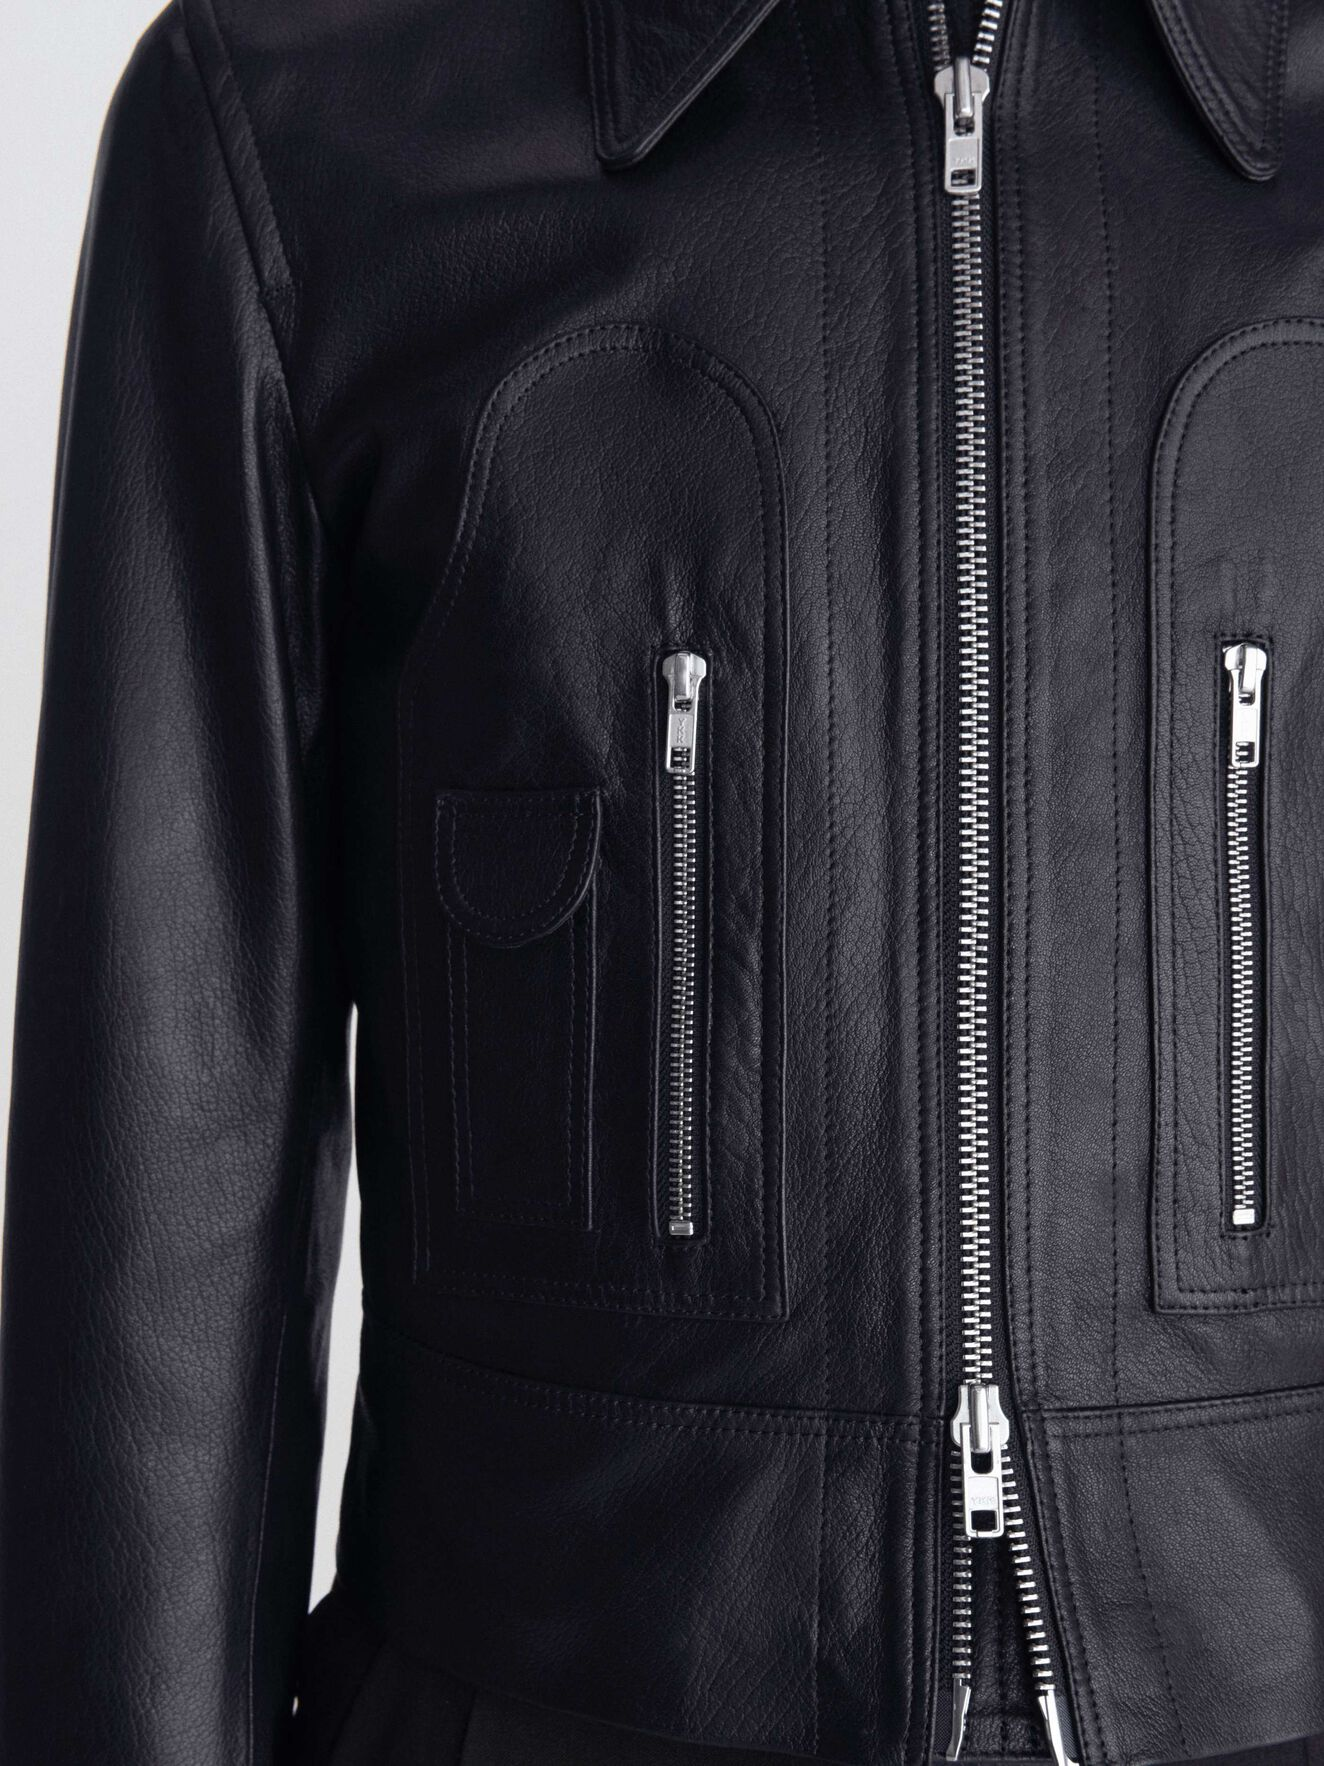 Lorant Jacket  in Black from Tiger of Sweden